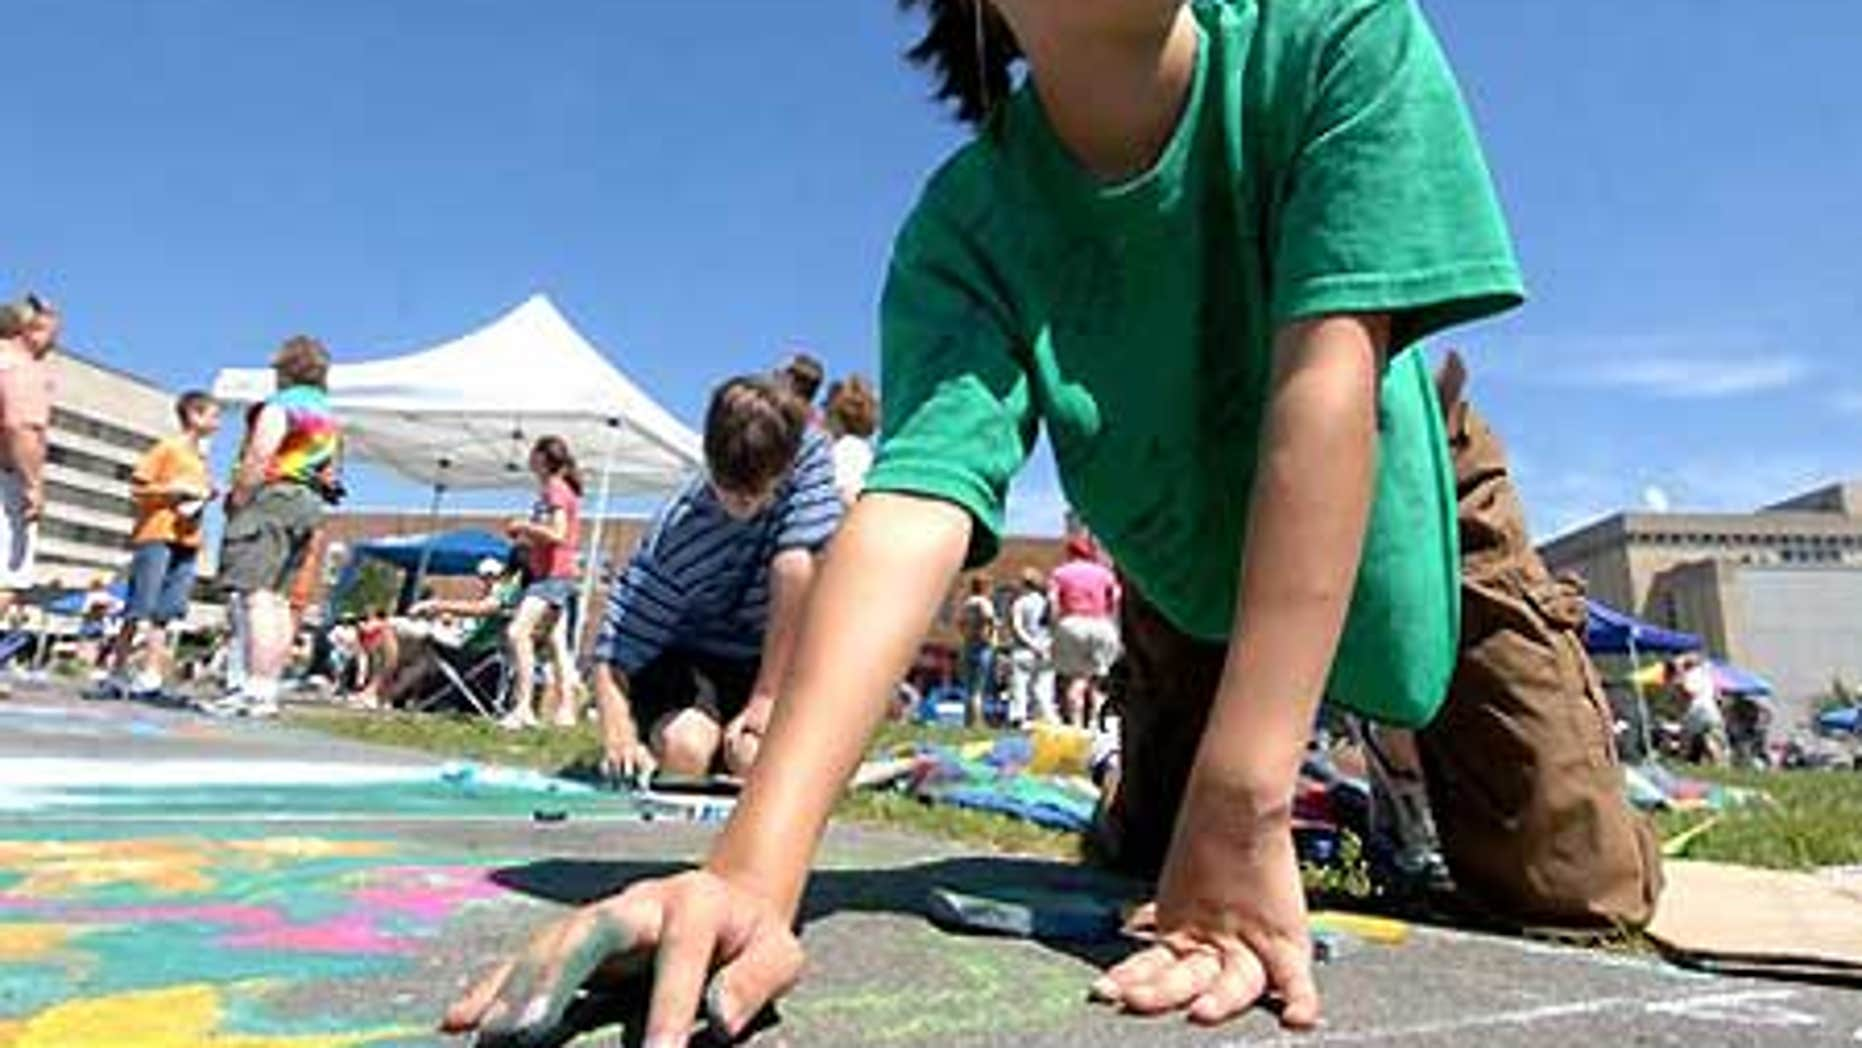 Madeline Kara Neumann works on chalk art during downtown Wausau's annual Chalk Fest.